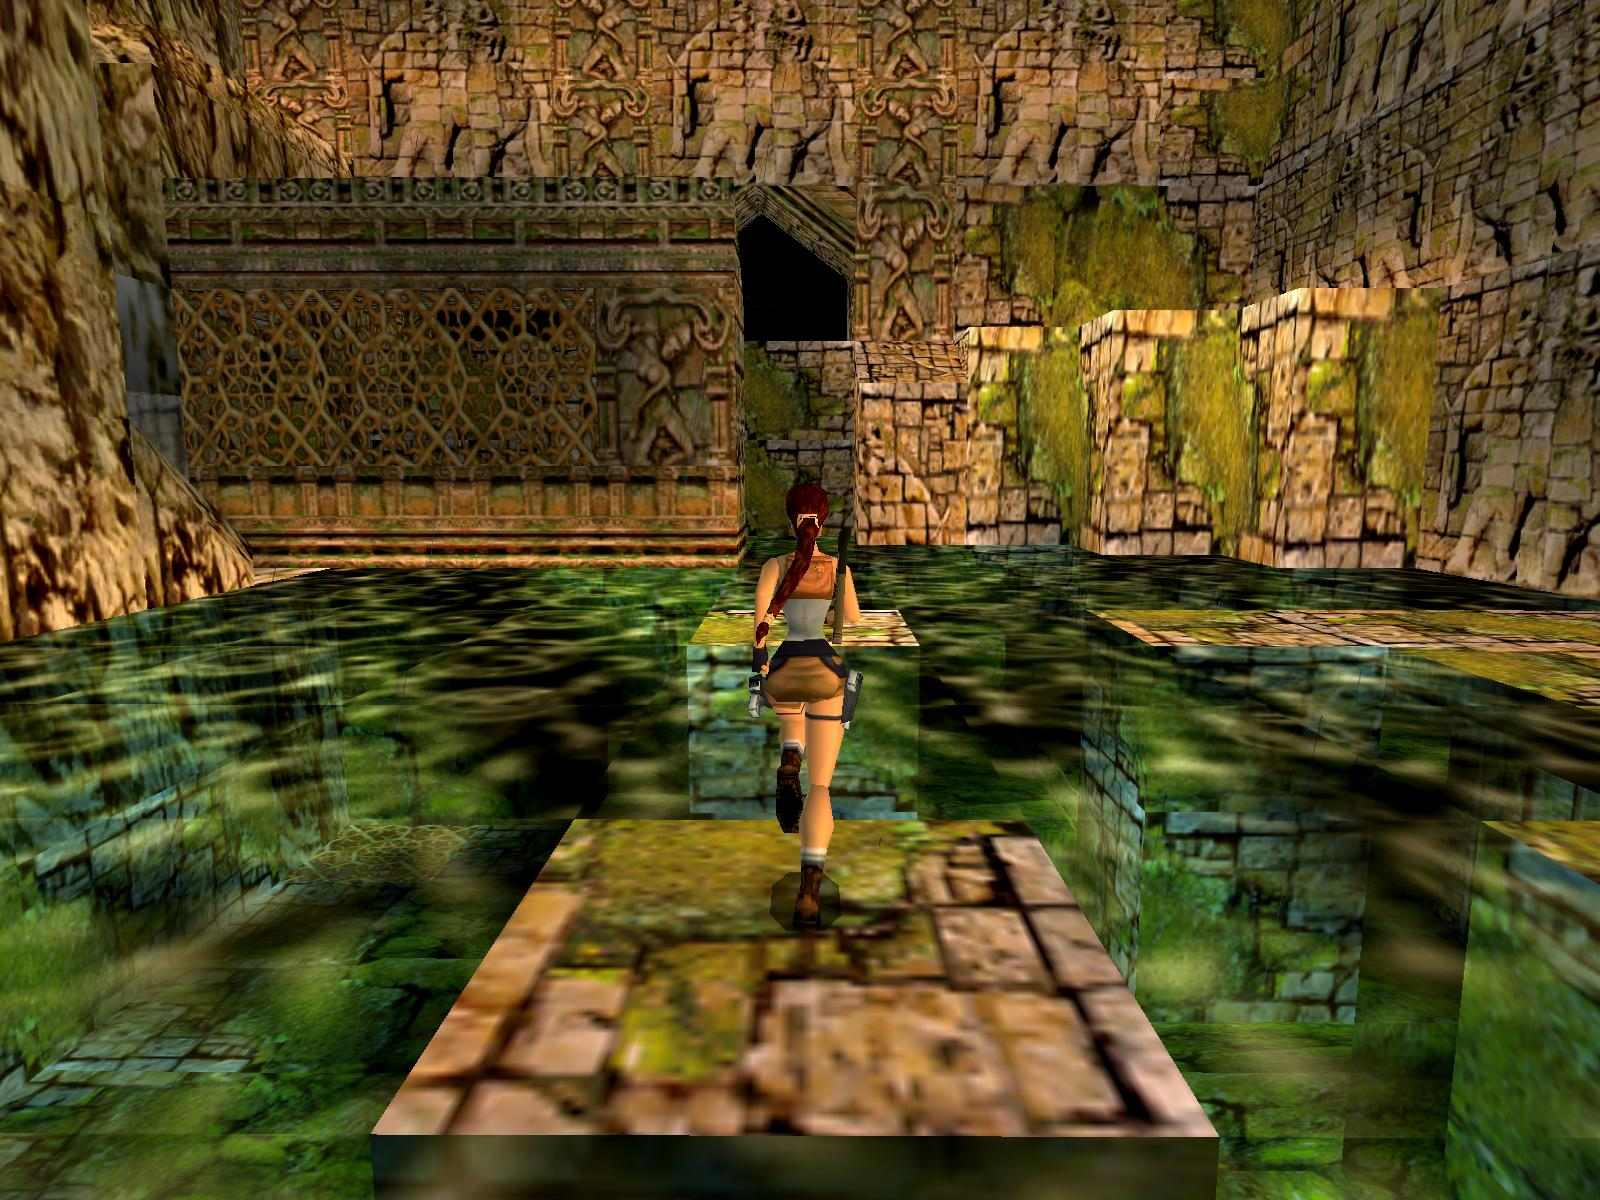 Tomb Raider Iii Adventures Of Lara Croft 1998 Promotional Art